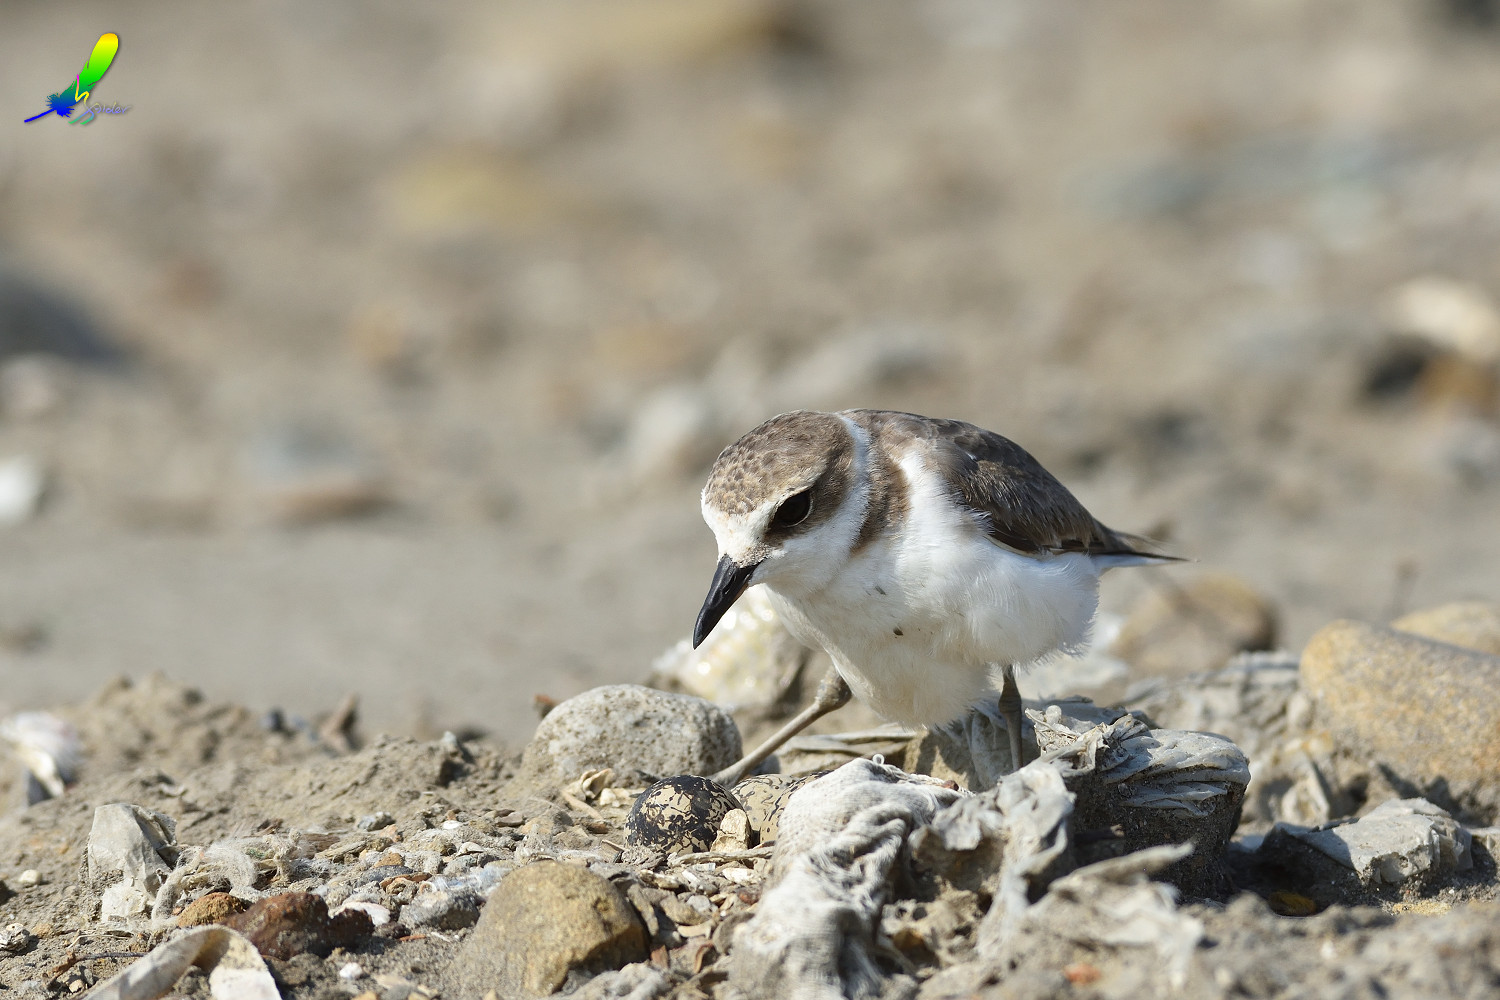 Kentish_Plover_9727